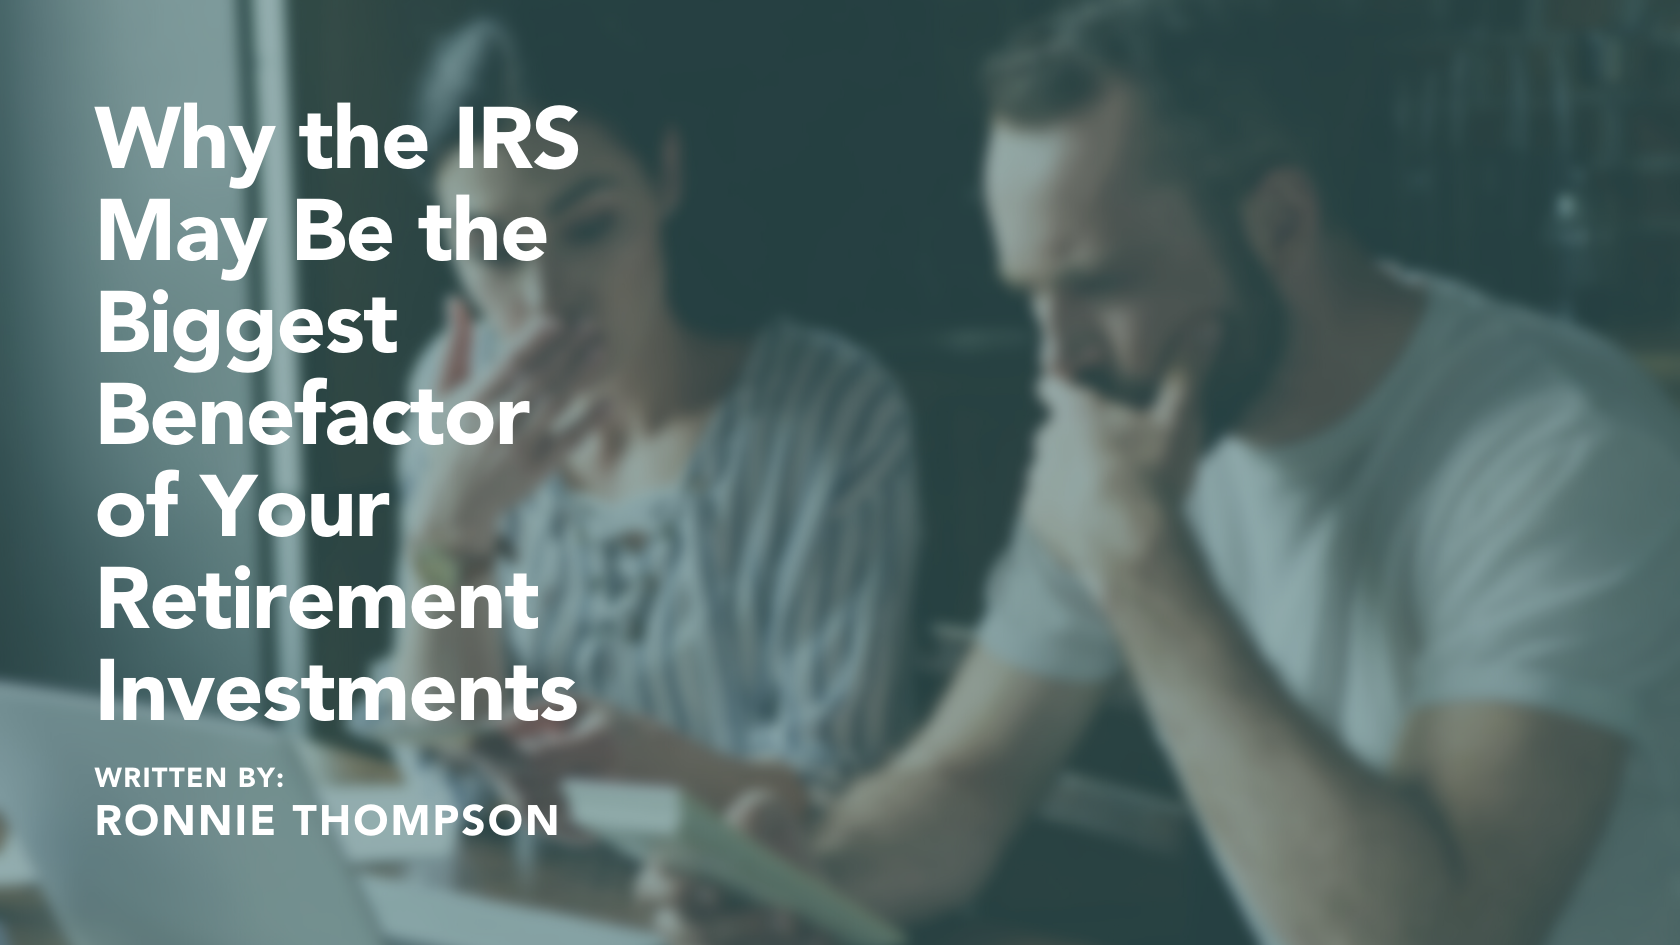 Why the IRS may be the biggest benefactor of your retirement investments